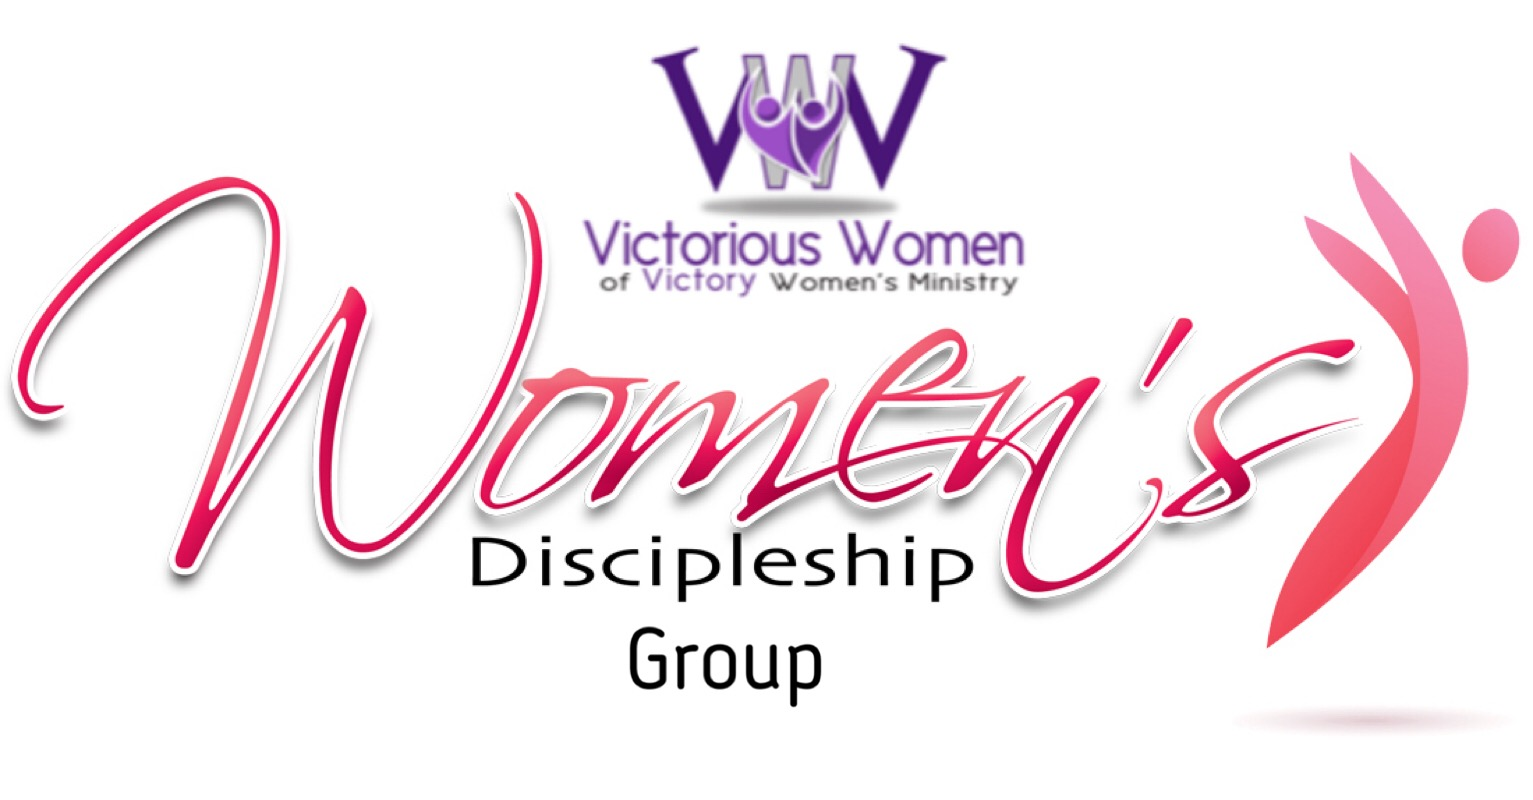 VWV Disciplelship Group.JPG